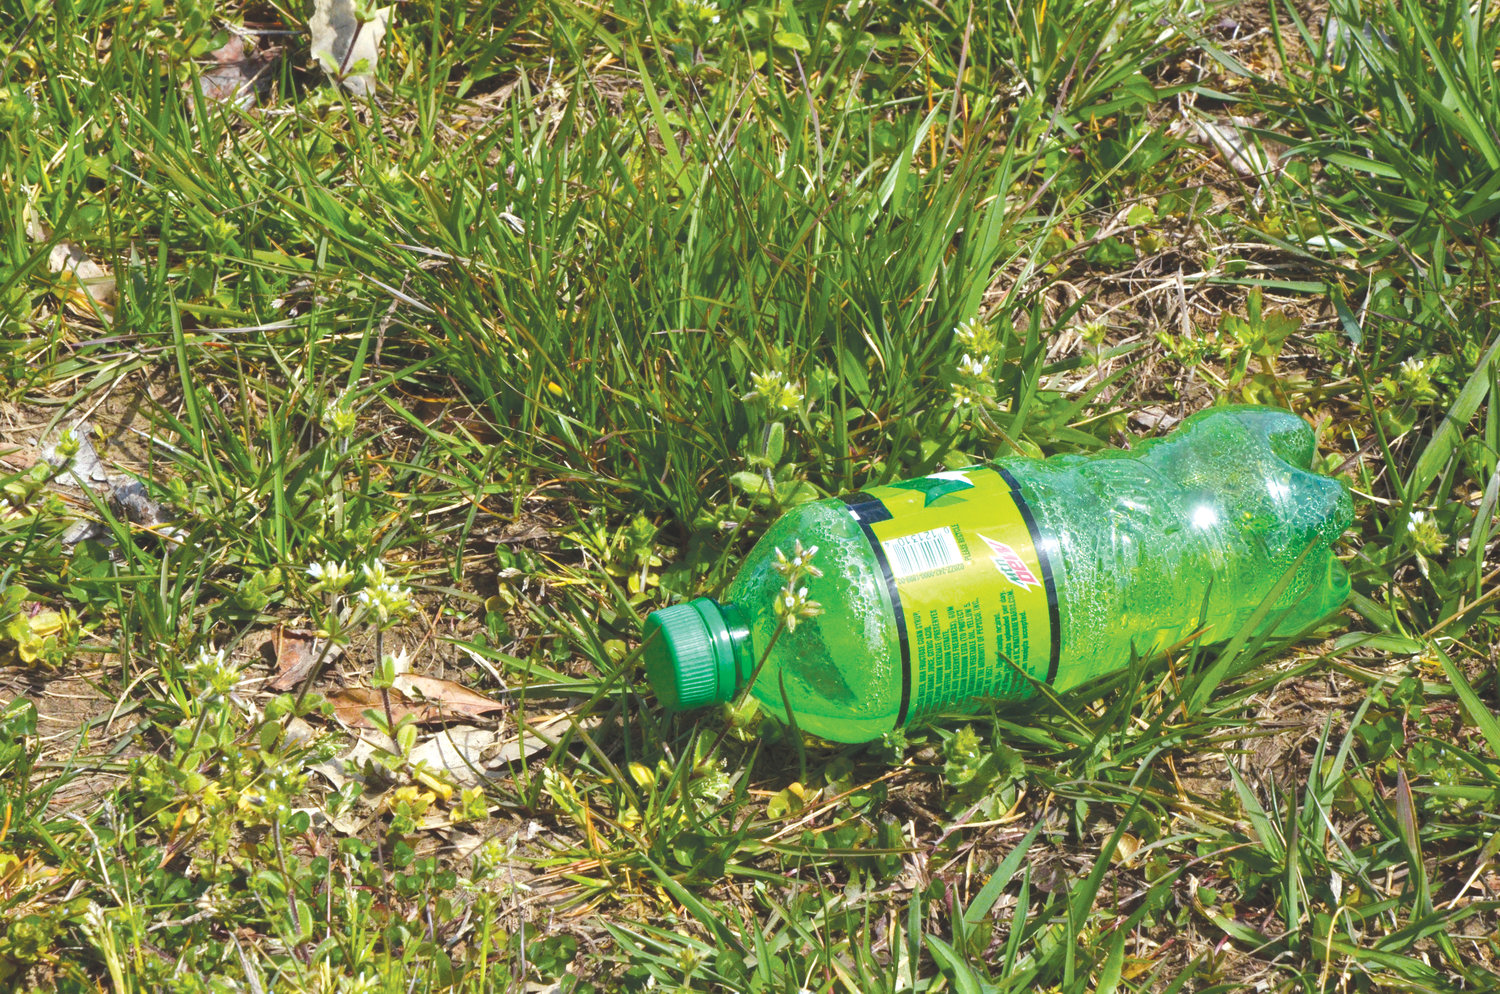 Plastic bottles are just one of the many items seen littering the roadways in Chatham County. The clean sweep effort is designed to add attractive landscapes to the area, a better quality of life, and to attract visitors. The short amount of time spent will pay benefits in the appearance of the area.